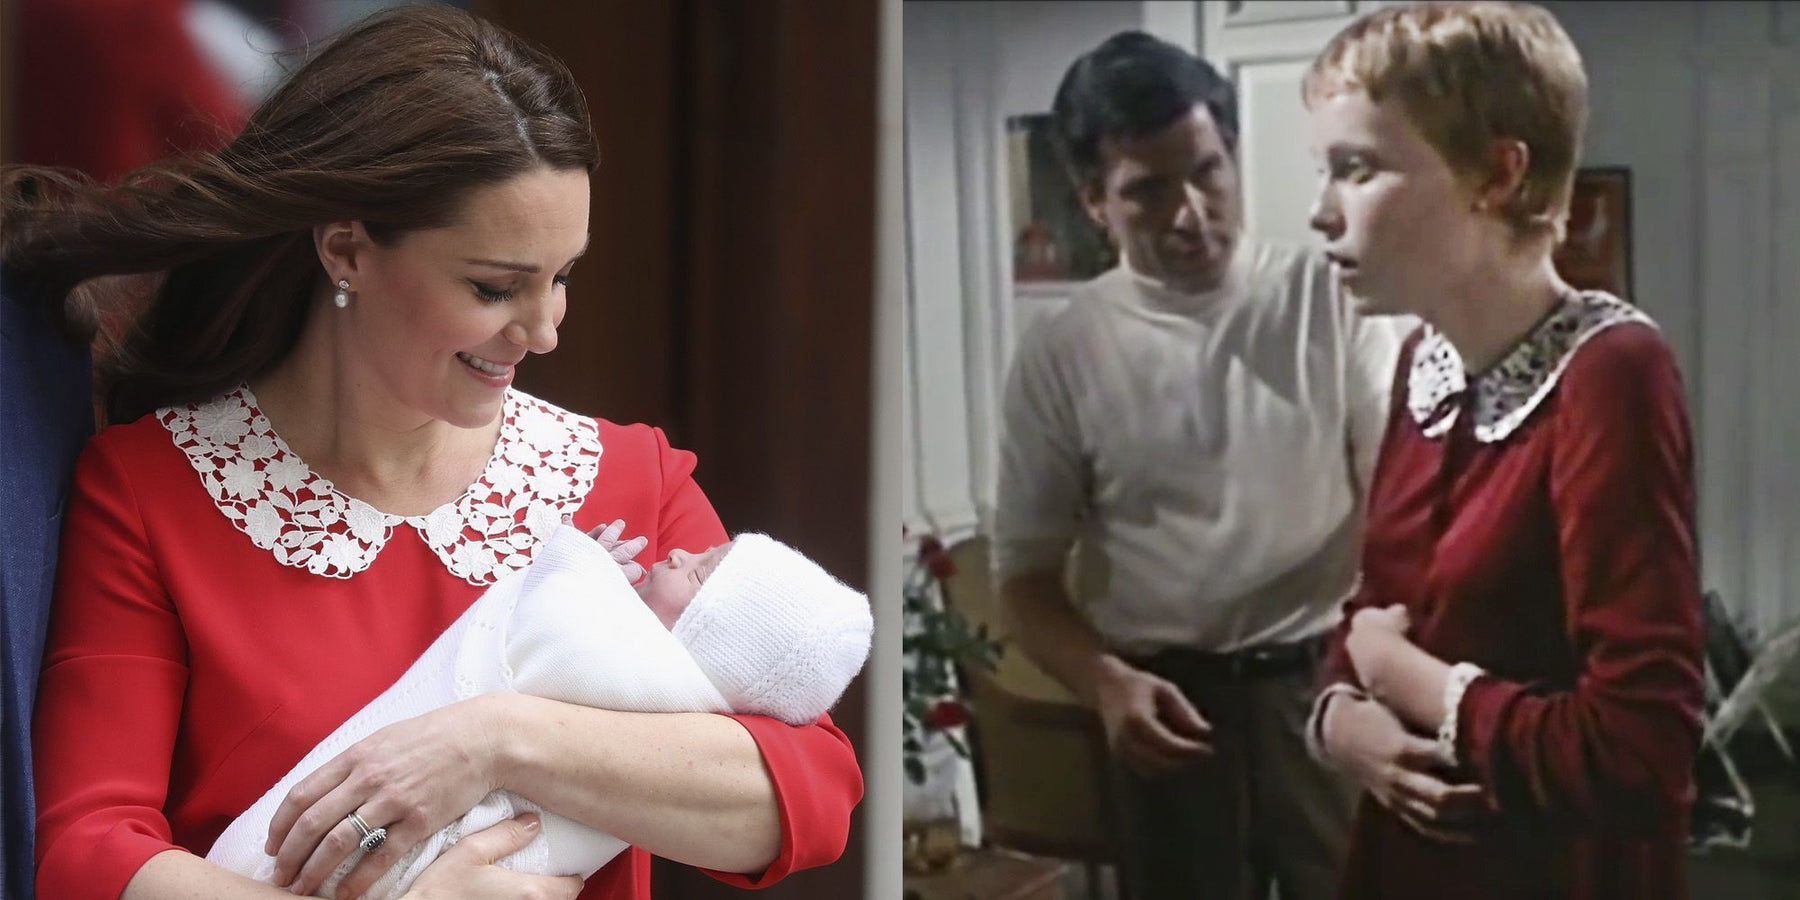 The Surprising Dress Some Twitter Users are Comparing Kate Middleton's Baby Reveal Dress To